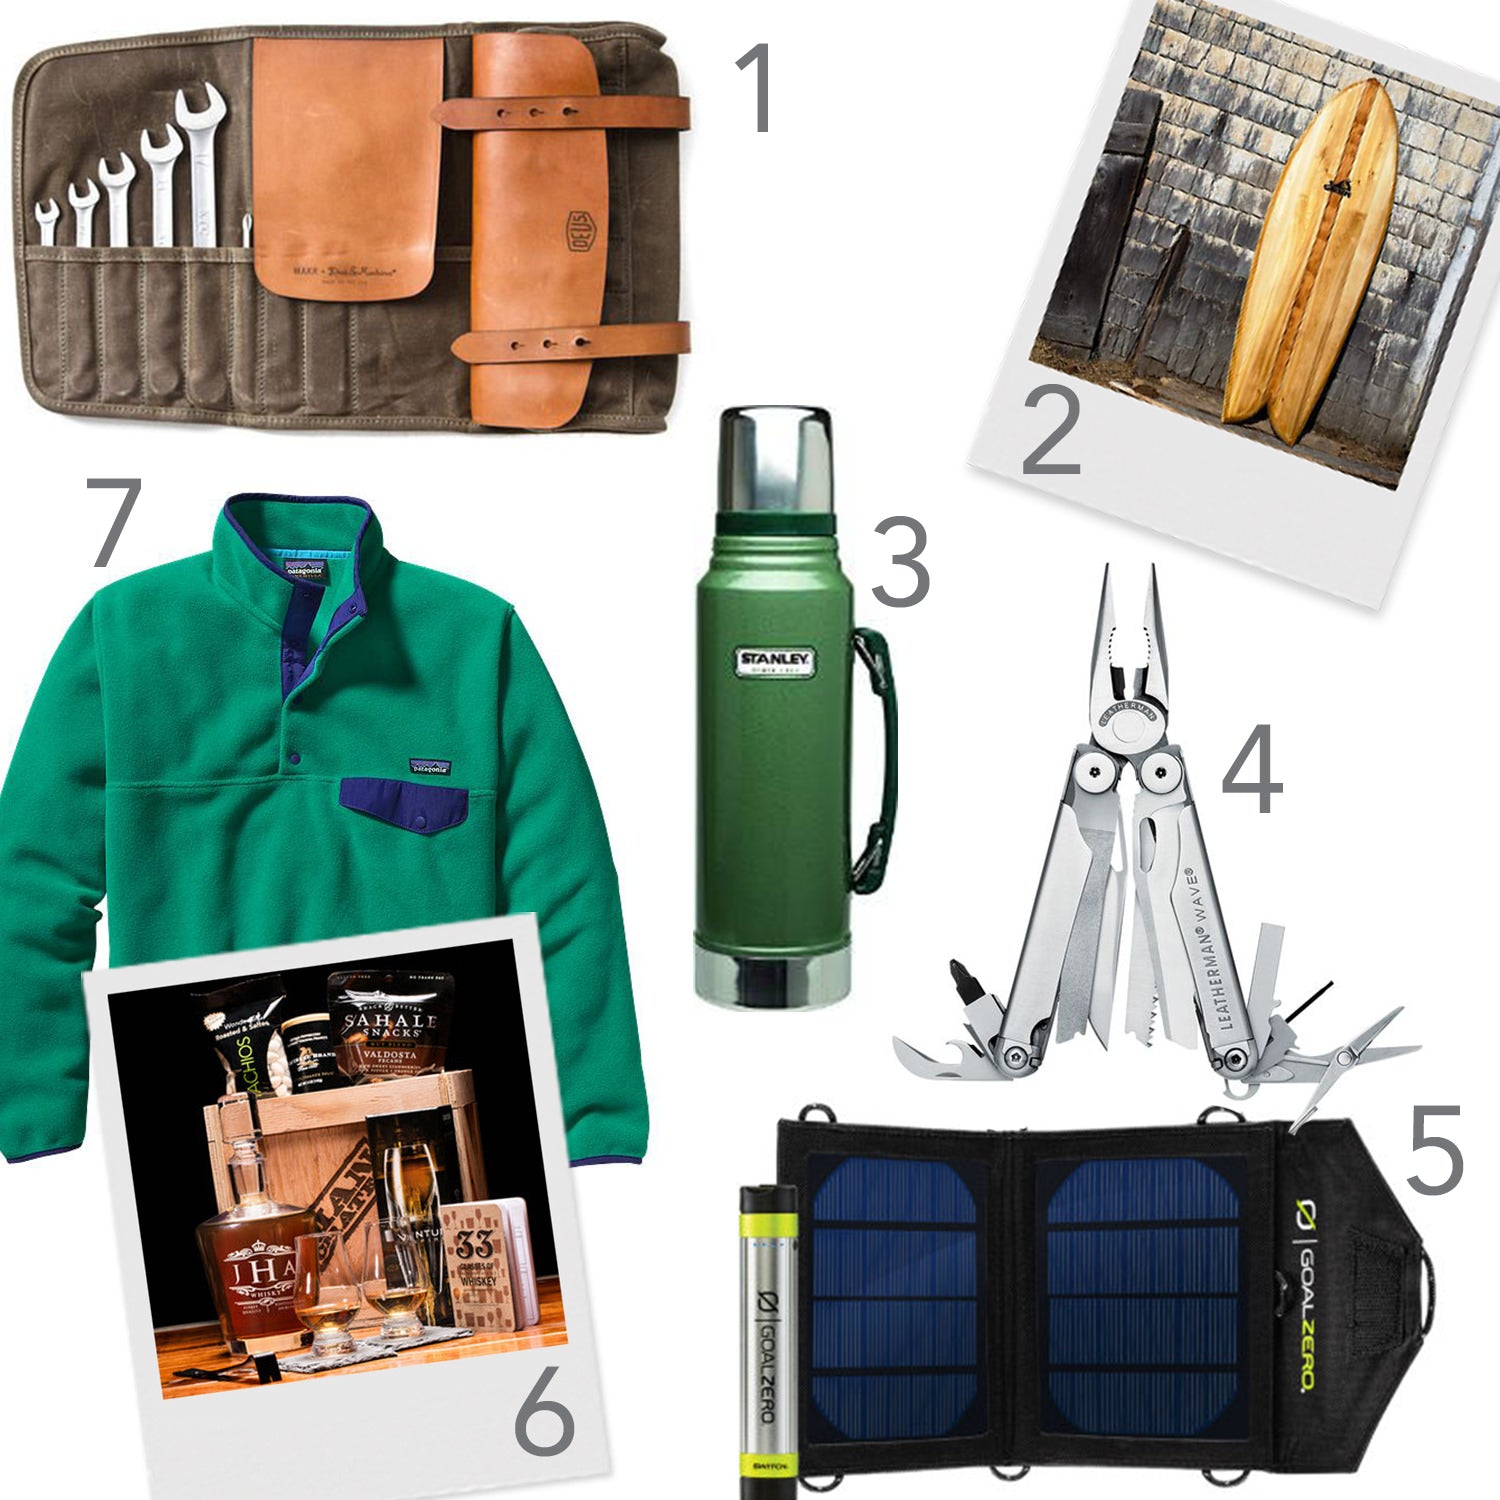 Fathers Day, Gift Guide, gift ideas, ryan graves, uber, patagonia, Deus, mancrates, leatherman, goal zero, grain surfboards, dads, ideas, gifts, stanley